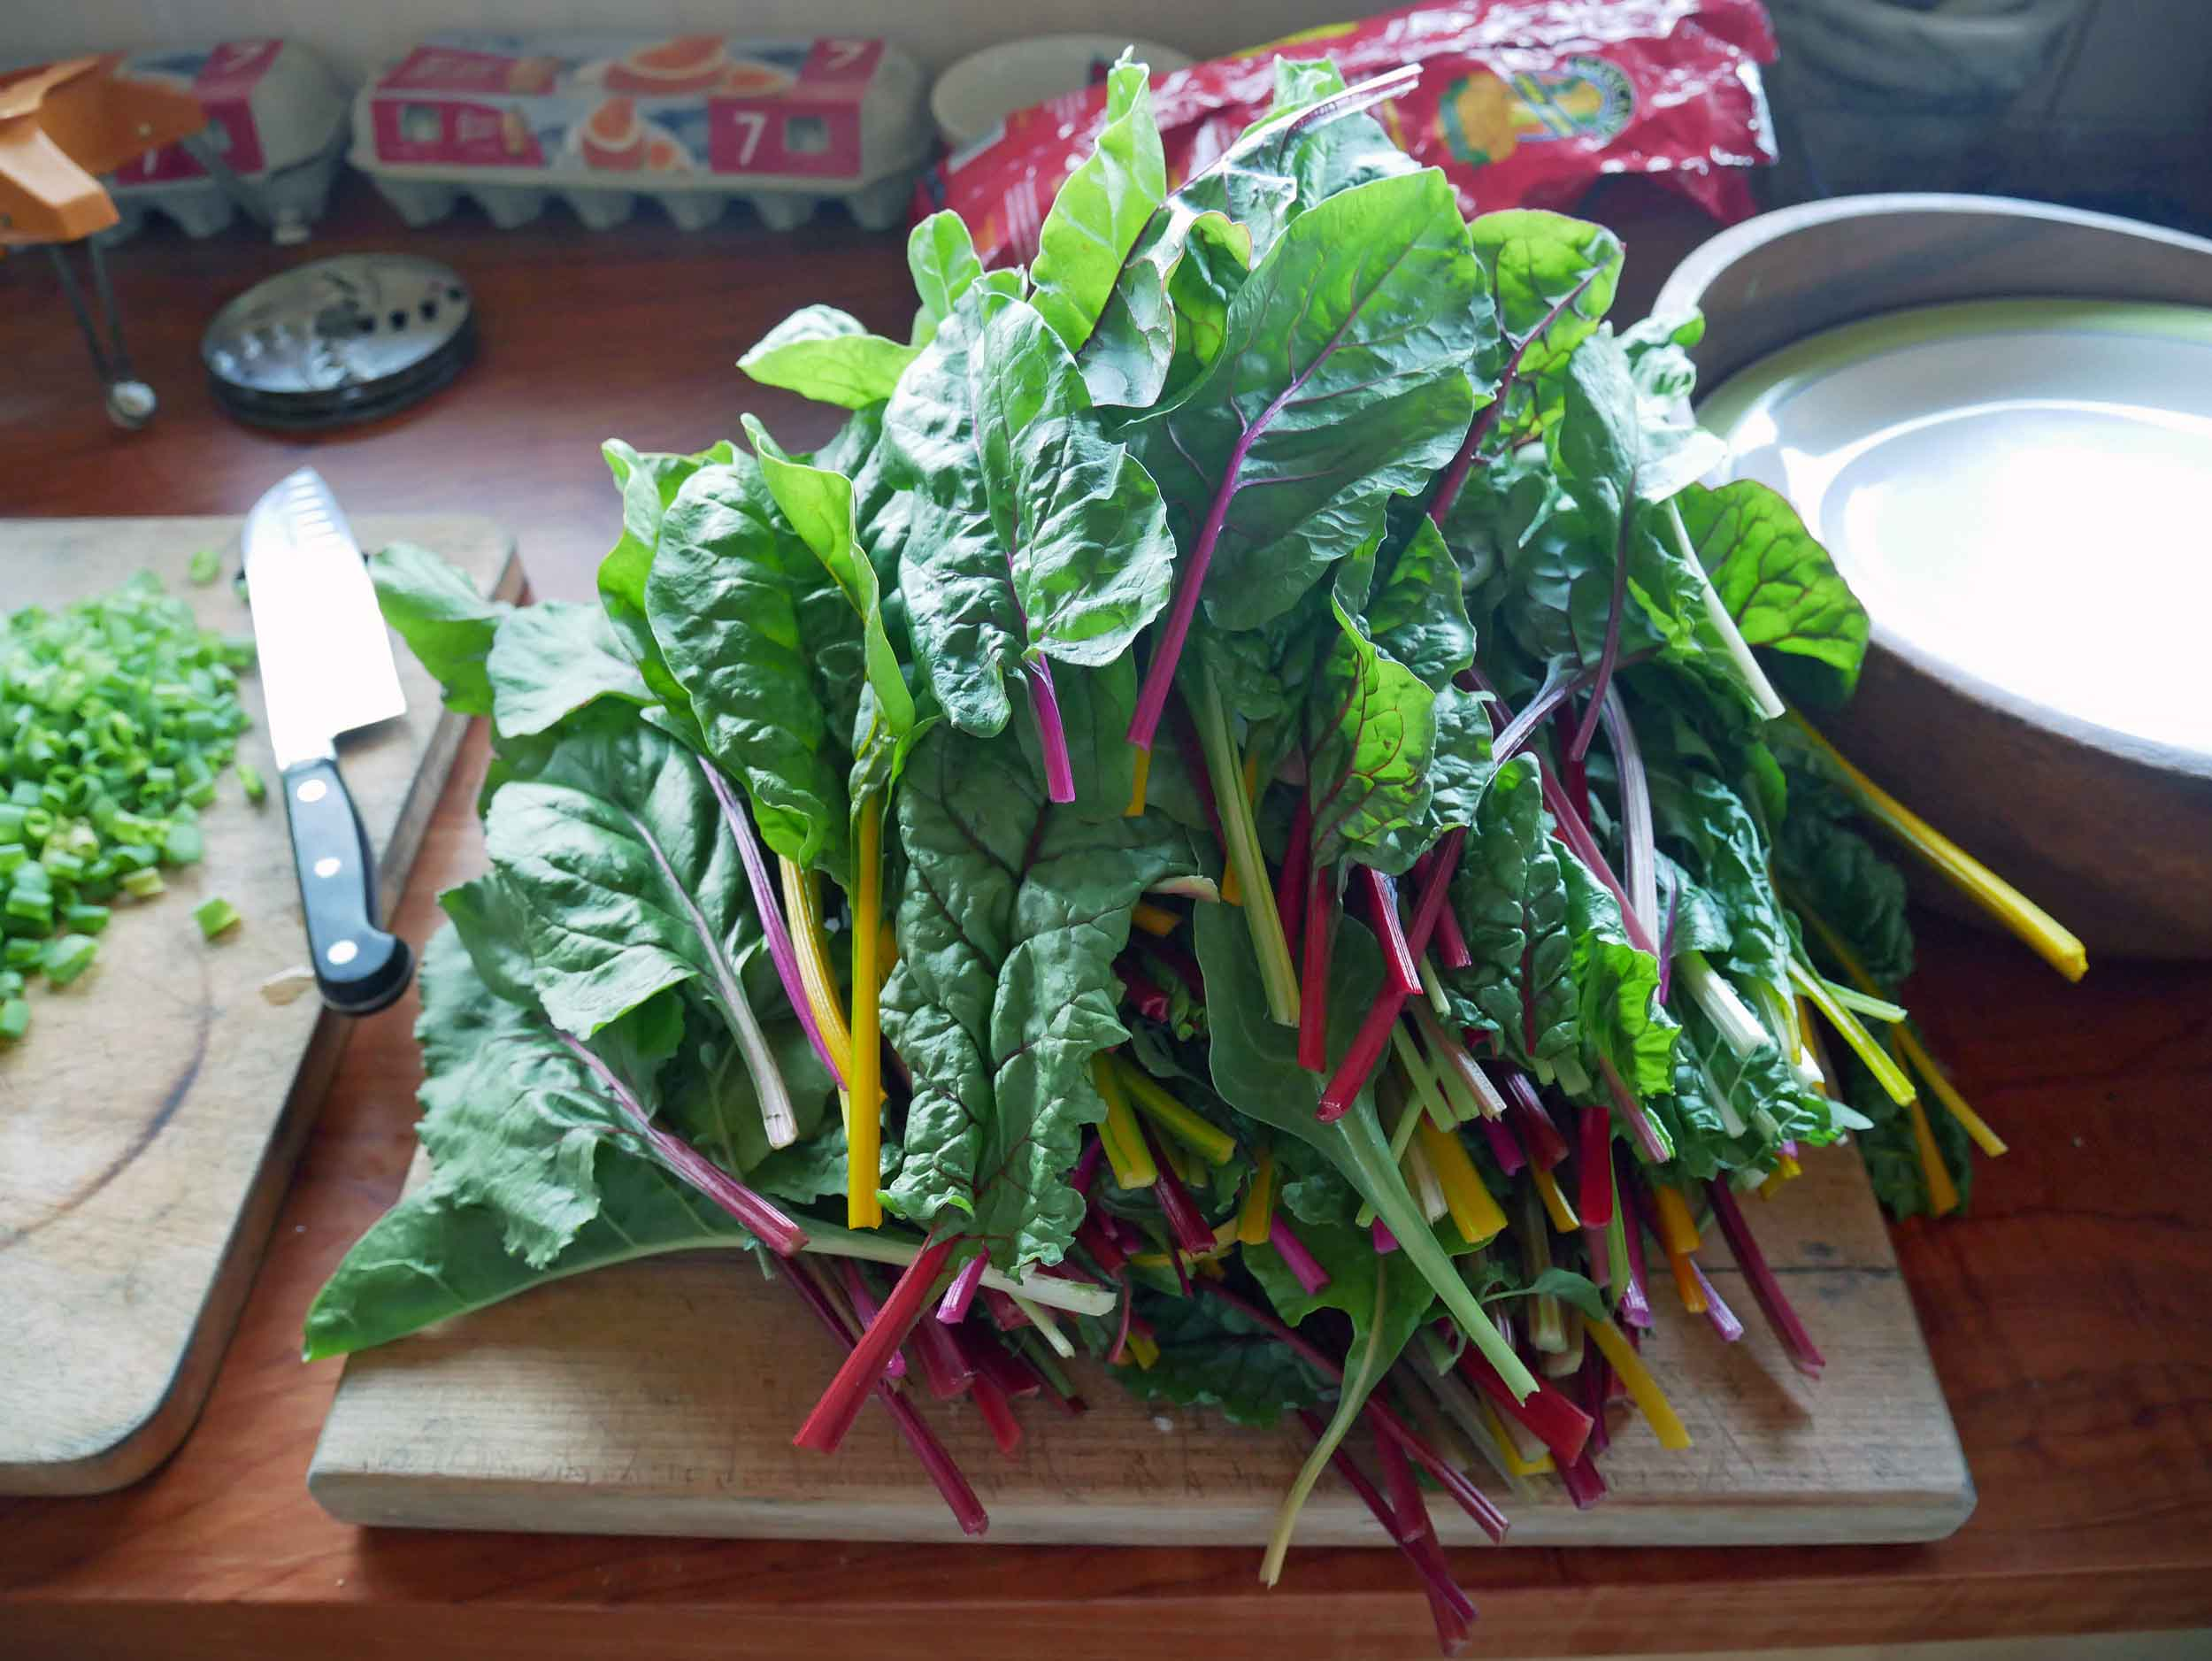 Swiss chard from the fields, which was used on delicious homemade pizzas for dinner.